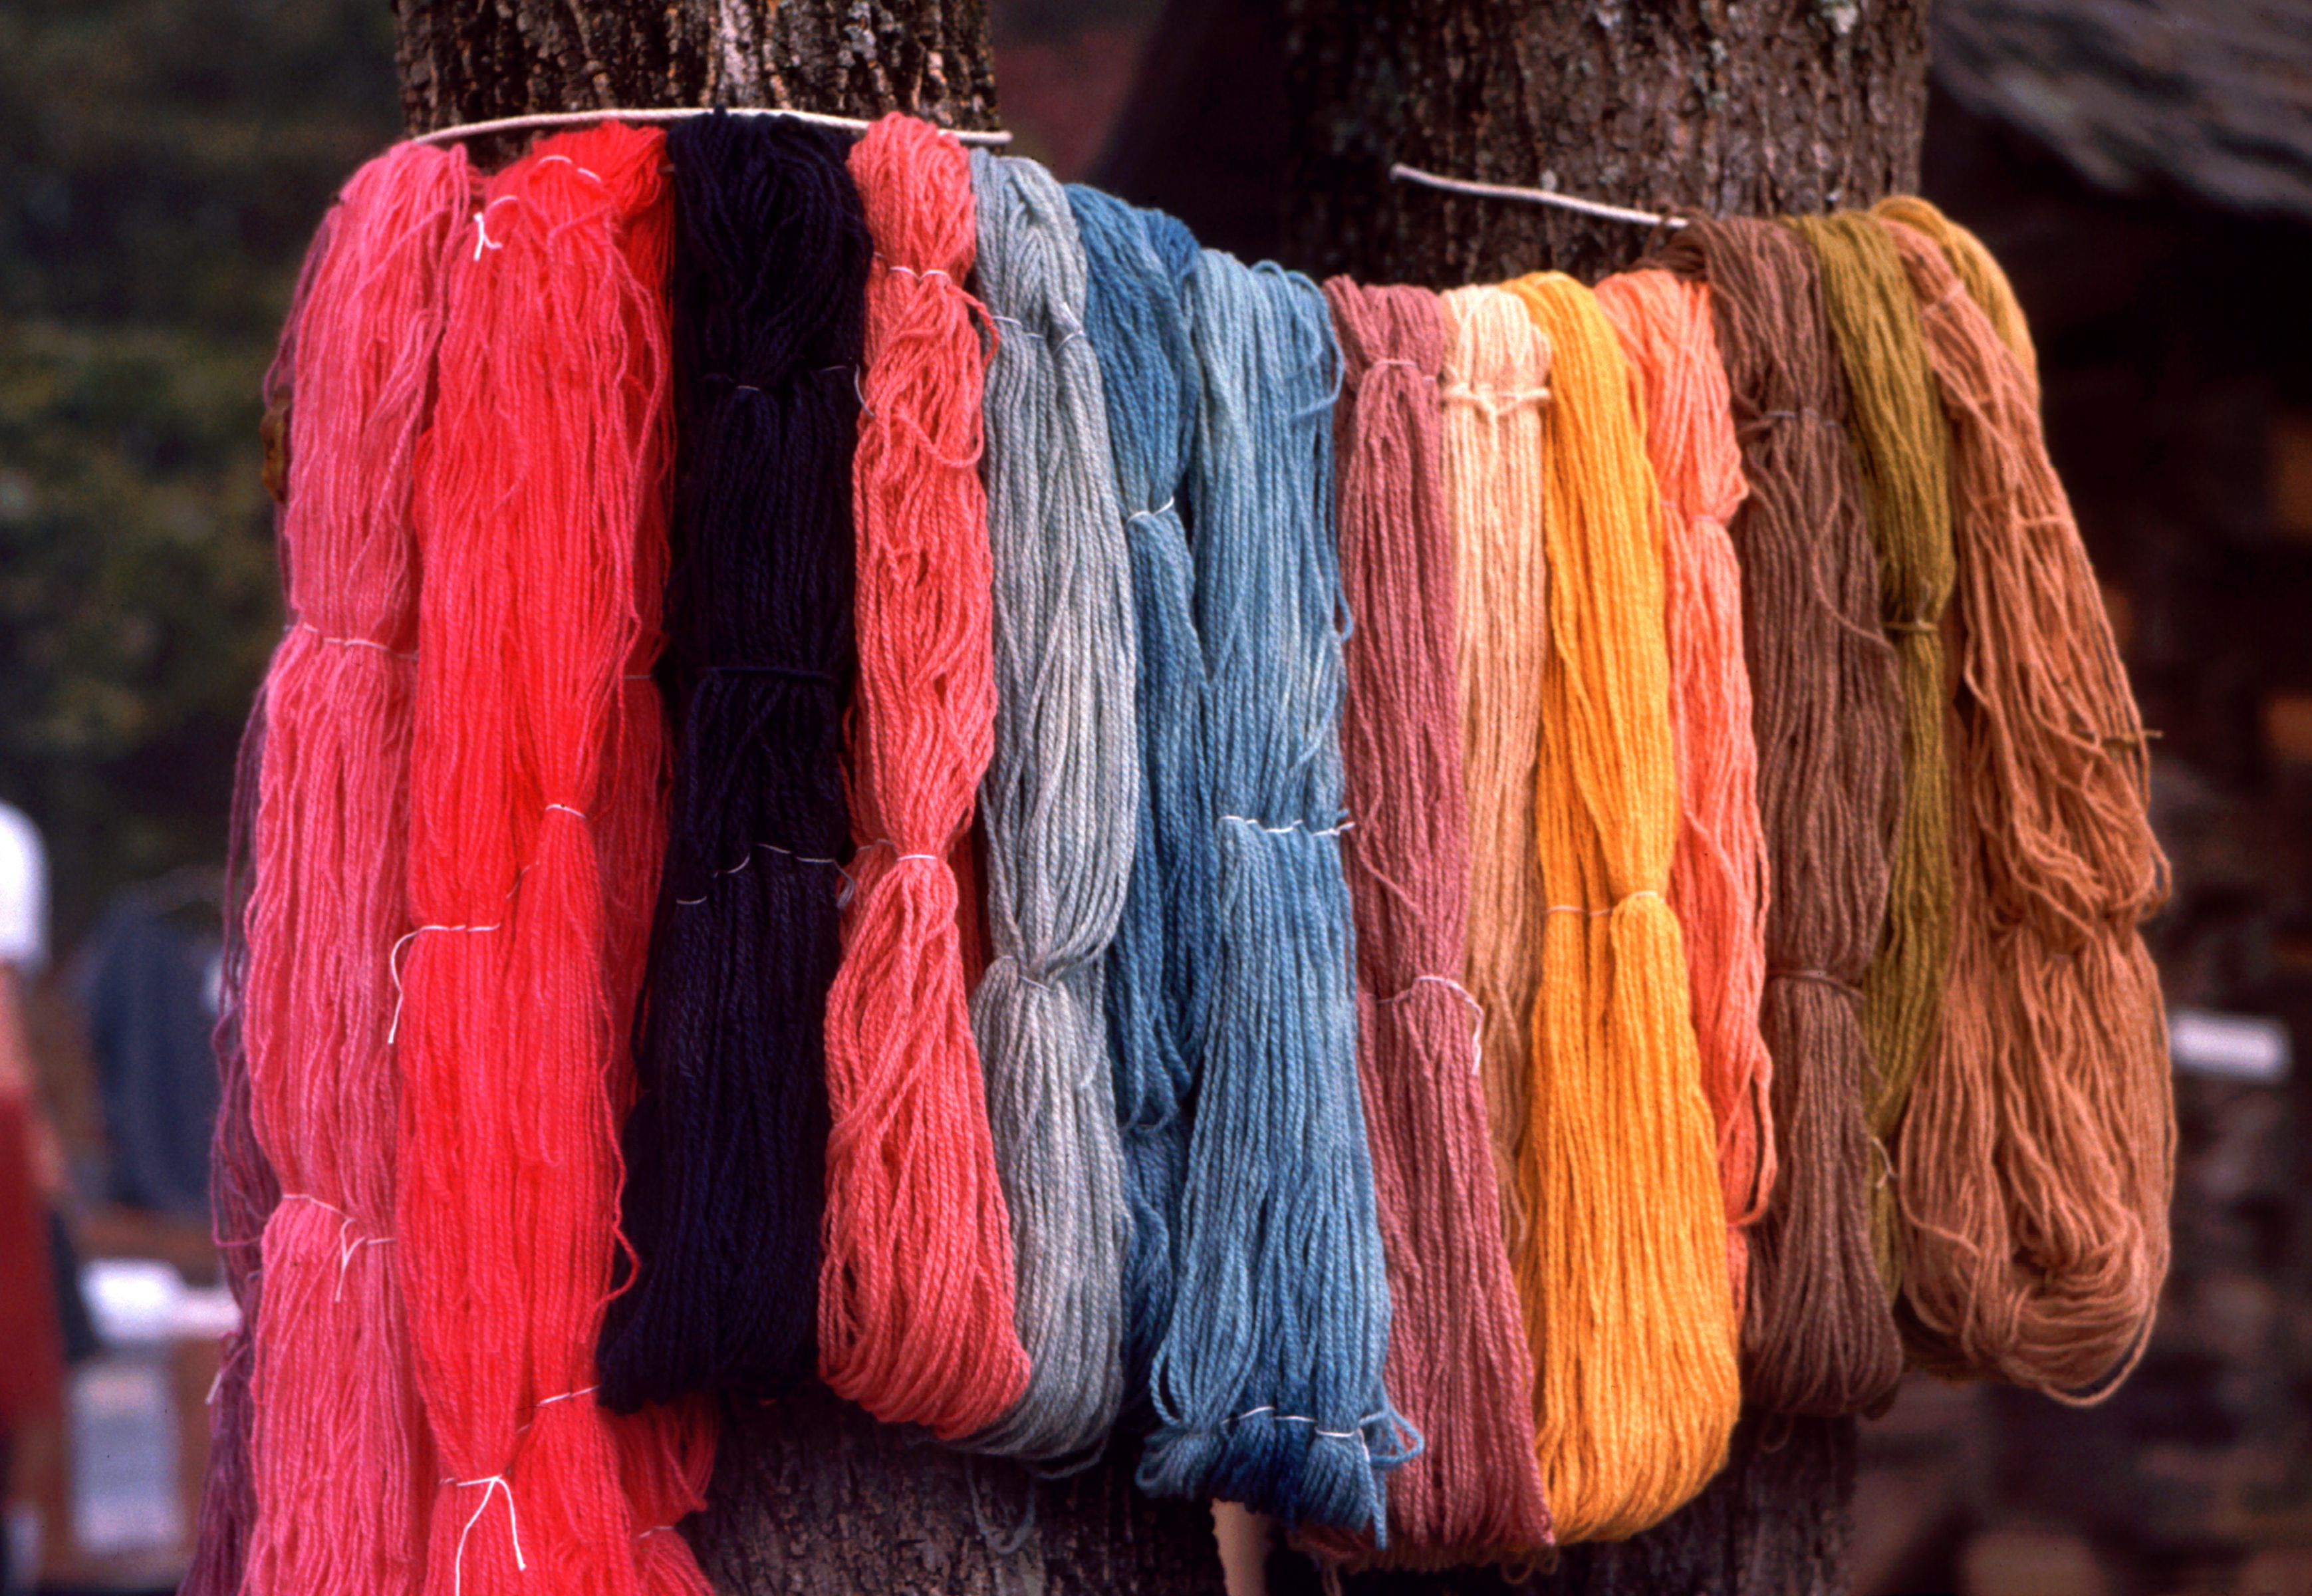 Coloring Fabric Using Natural Dyes